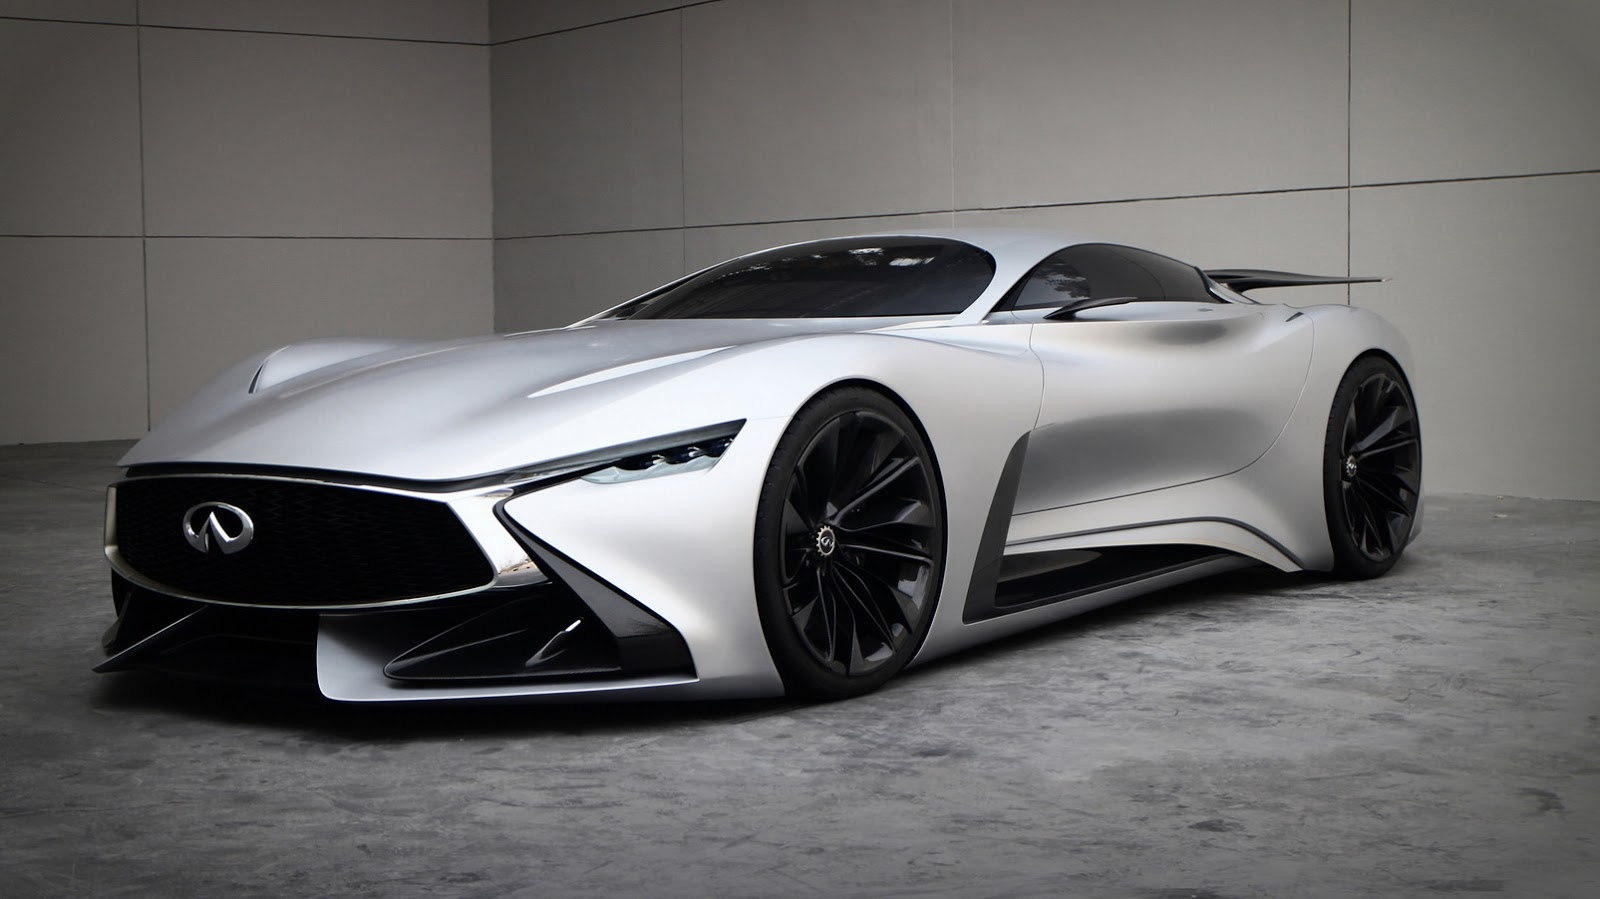 Infiniti infiniti concept car : Infiniti's Vision GT Concept Is Real And It Was Designed In China ...